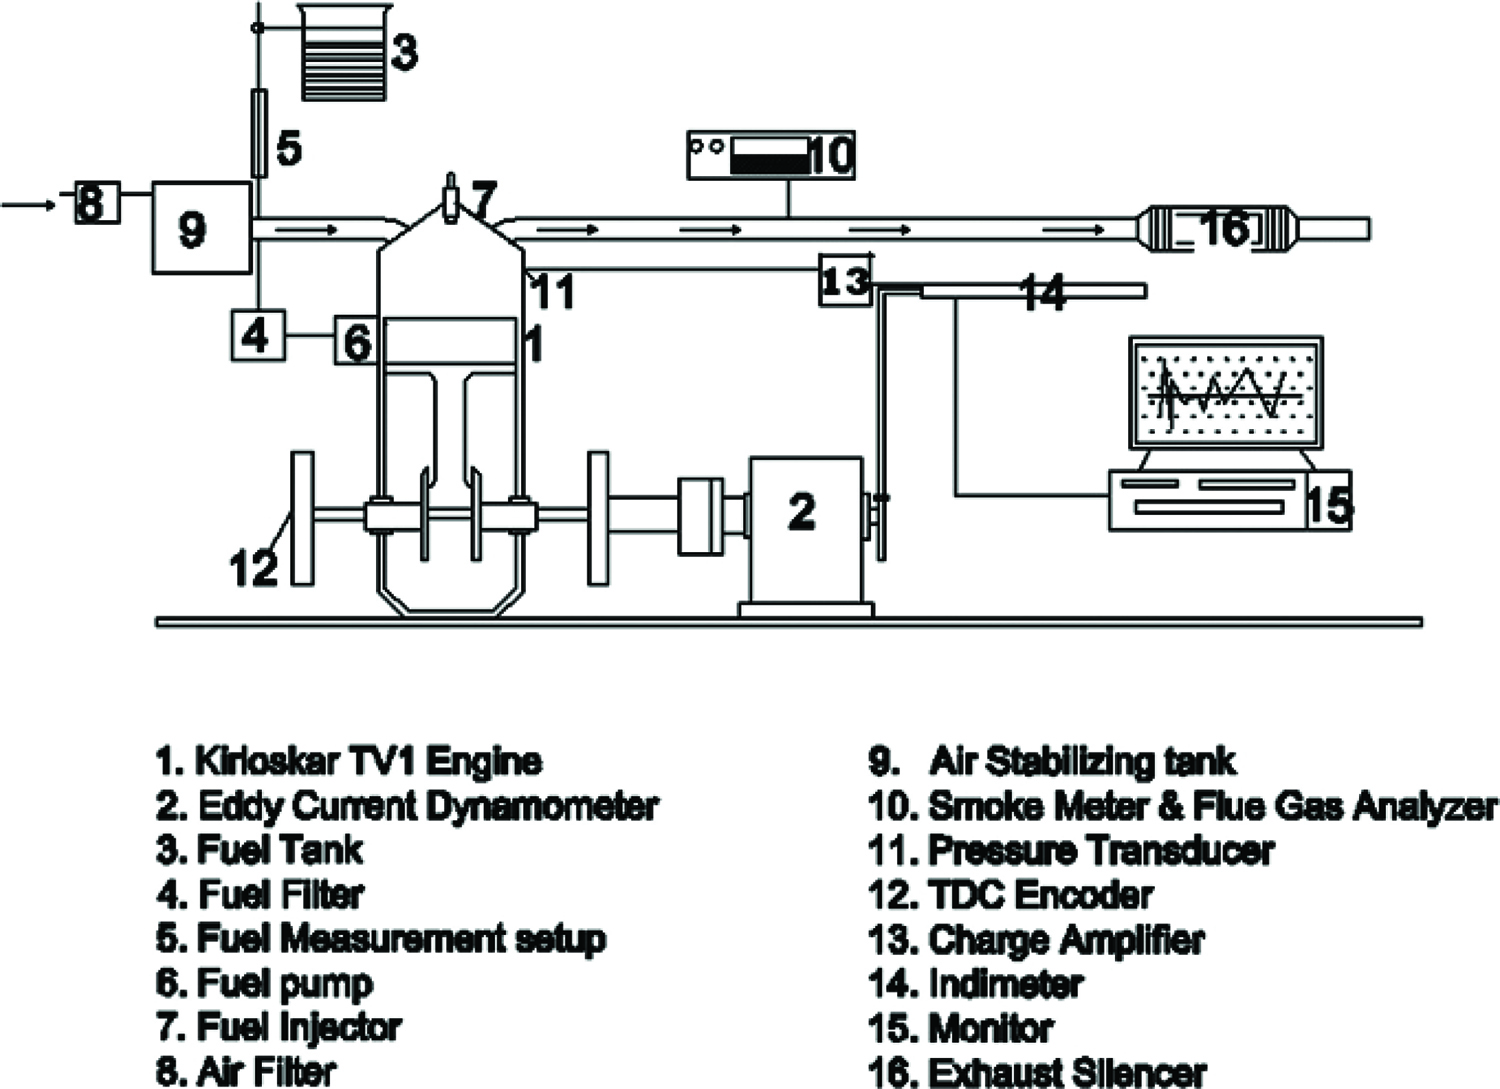 Emission Analysis On The Influence Of Ferrofluid Rice Bran Biodiesel Eddy Current Sensor Circuit Diagram Furthermore Semiconductor Fig 1 Layout Engine And Instrumentation Set Up